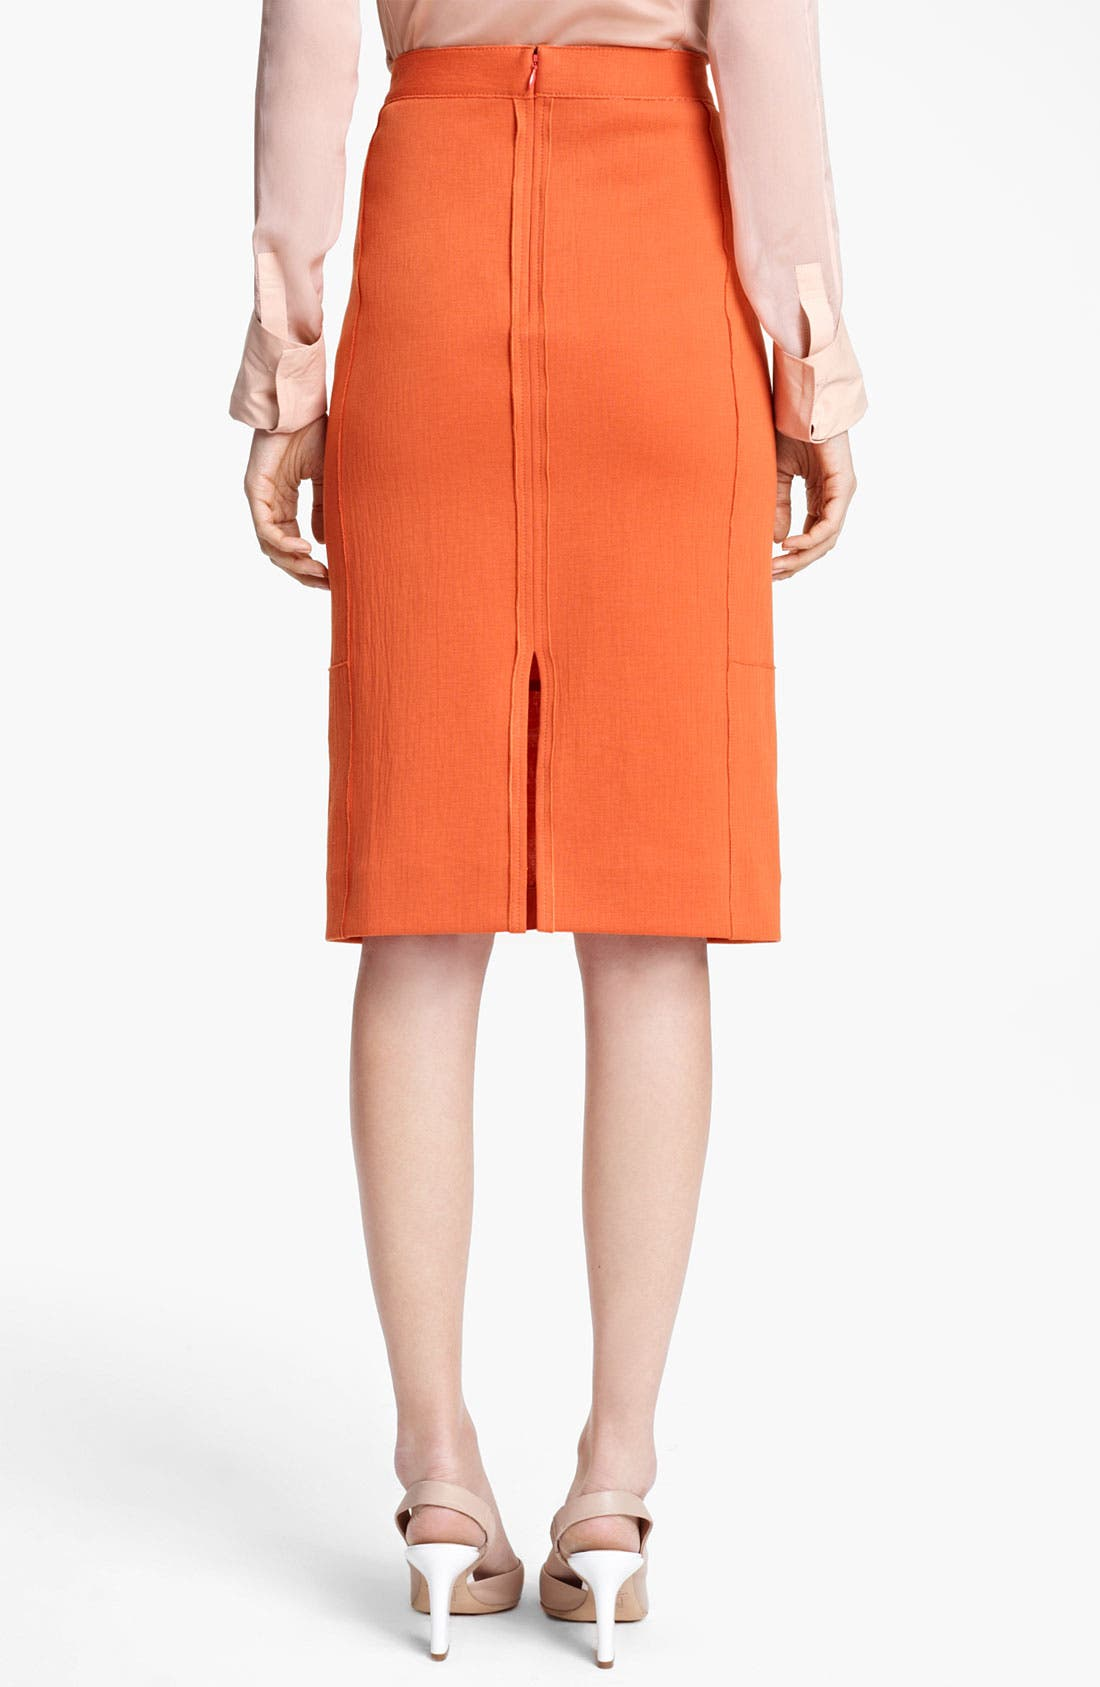 REED KRAKOFF, Seamed Jersey Skirt, Alternate thumbnail 3, color, 810